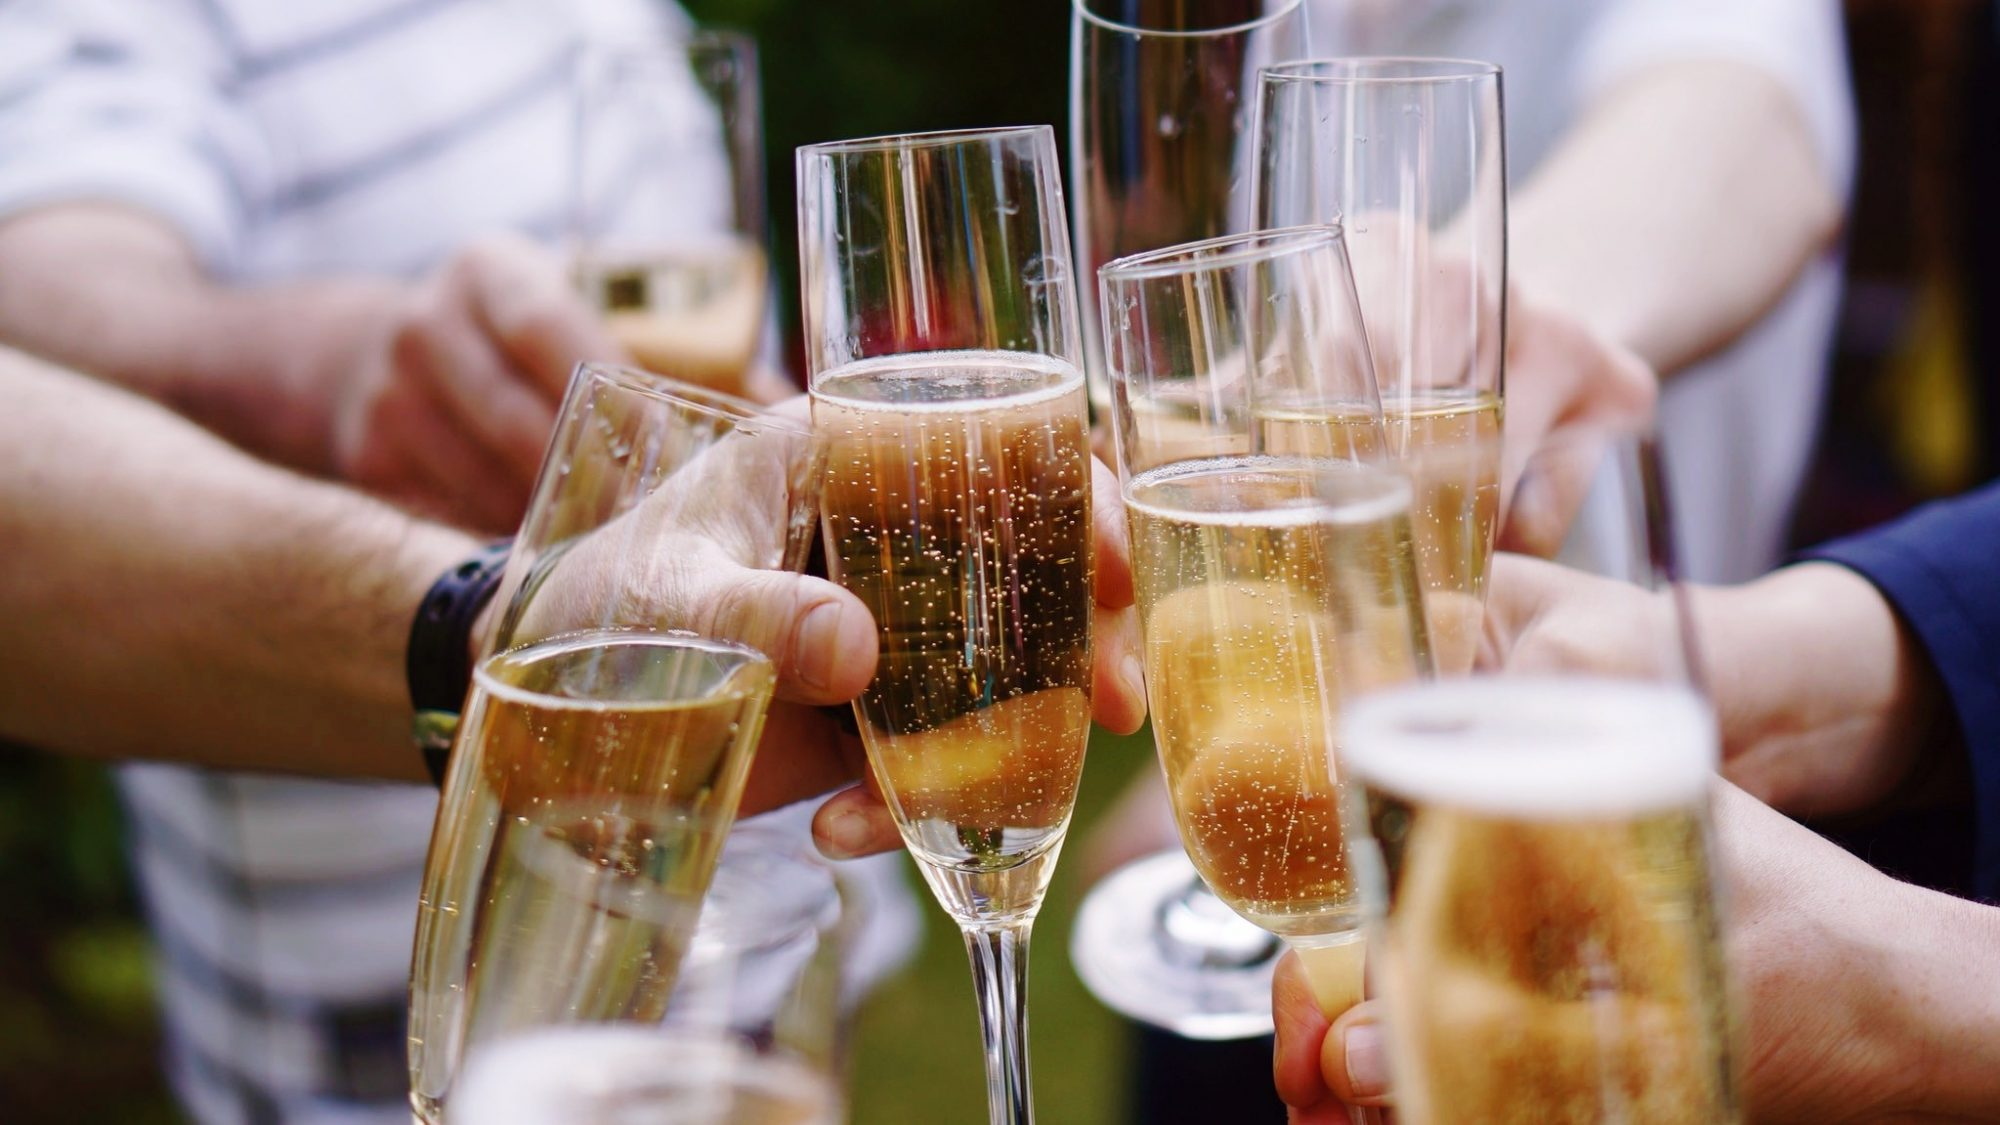 getty-champagne-image